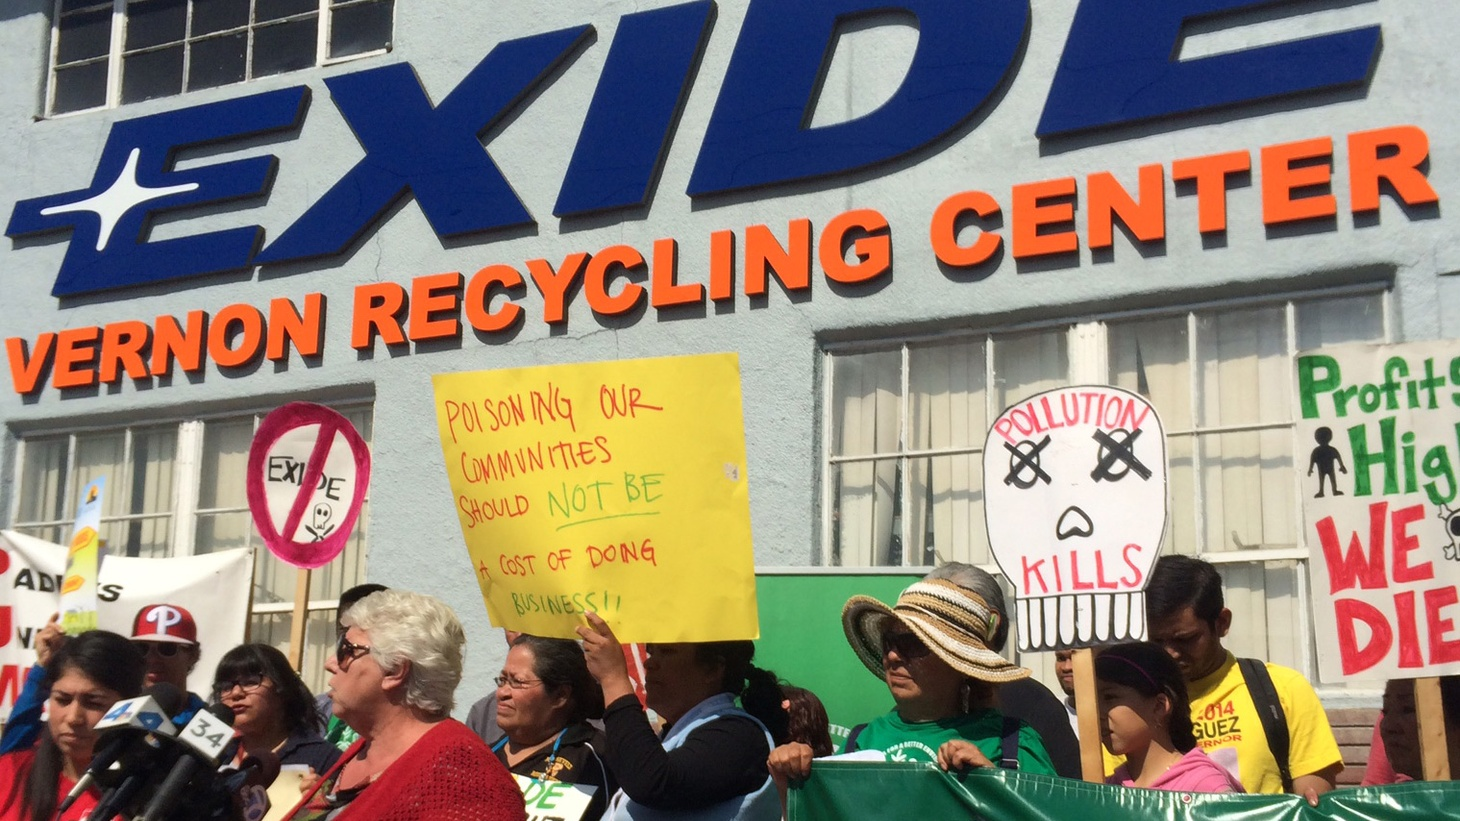 Yesterday, California Gov. Jerry Brown introduced a $177 million plan to test and clean up the areas contaminated by the Exide battery recycling plant. What's going on with residents in those areas in the meantime?